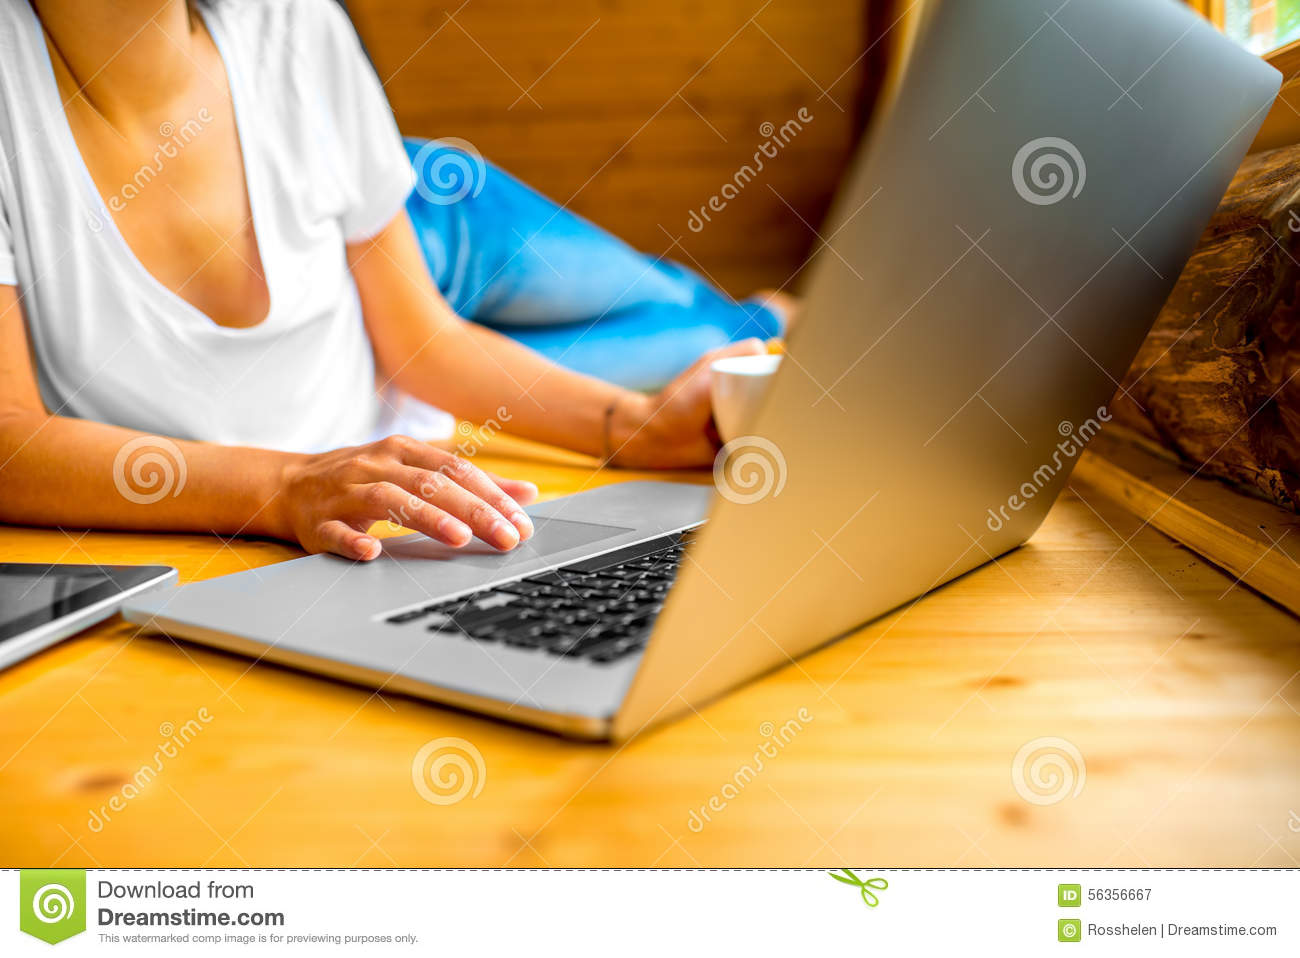 Woman Working With Laptop On The Wooden Floor Stock Image